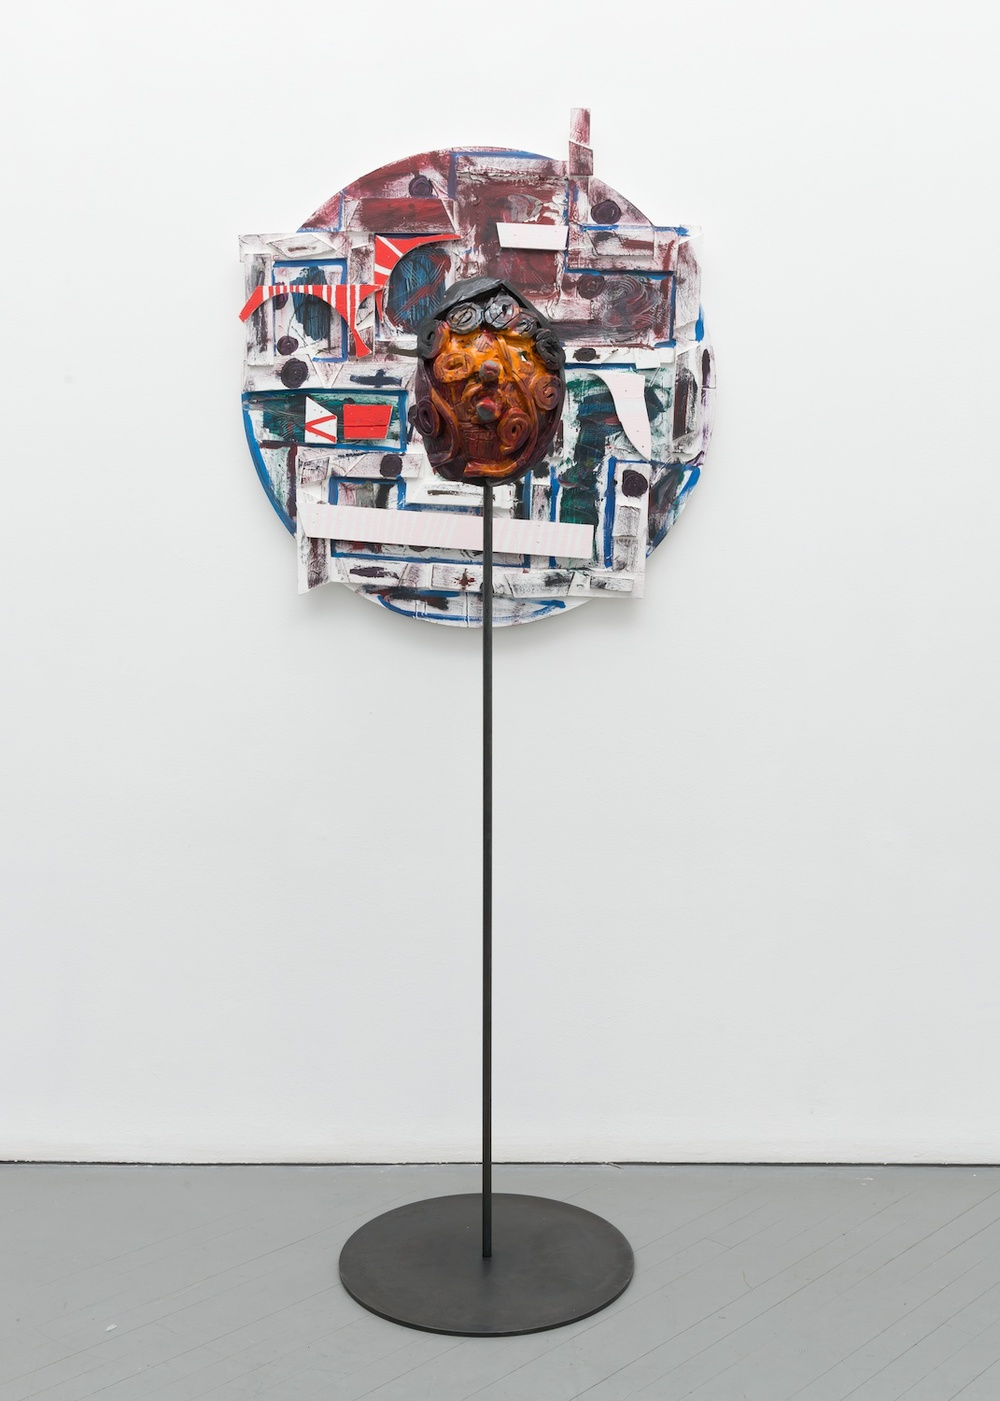 "William J. O'Brien Untitled 2013/2014 Mixed media on wood; Glazed ceramic on steel armature 35"" x 39"" (painting); 66 1/2"" x 20"" x 20"" (ceramic + stand) WOB907/WOB934"